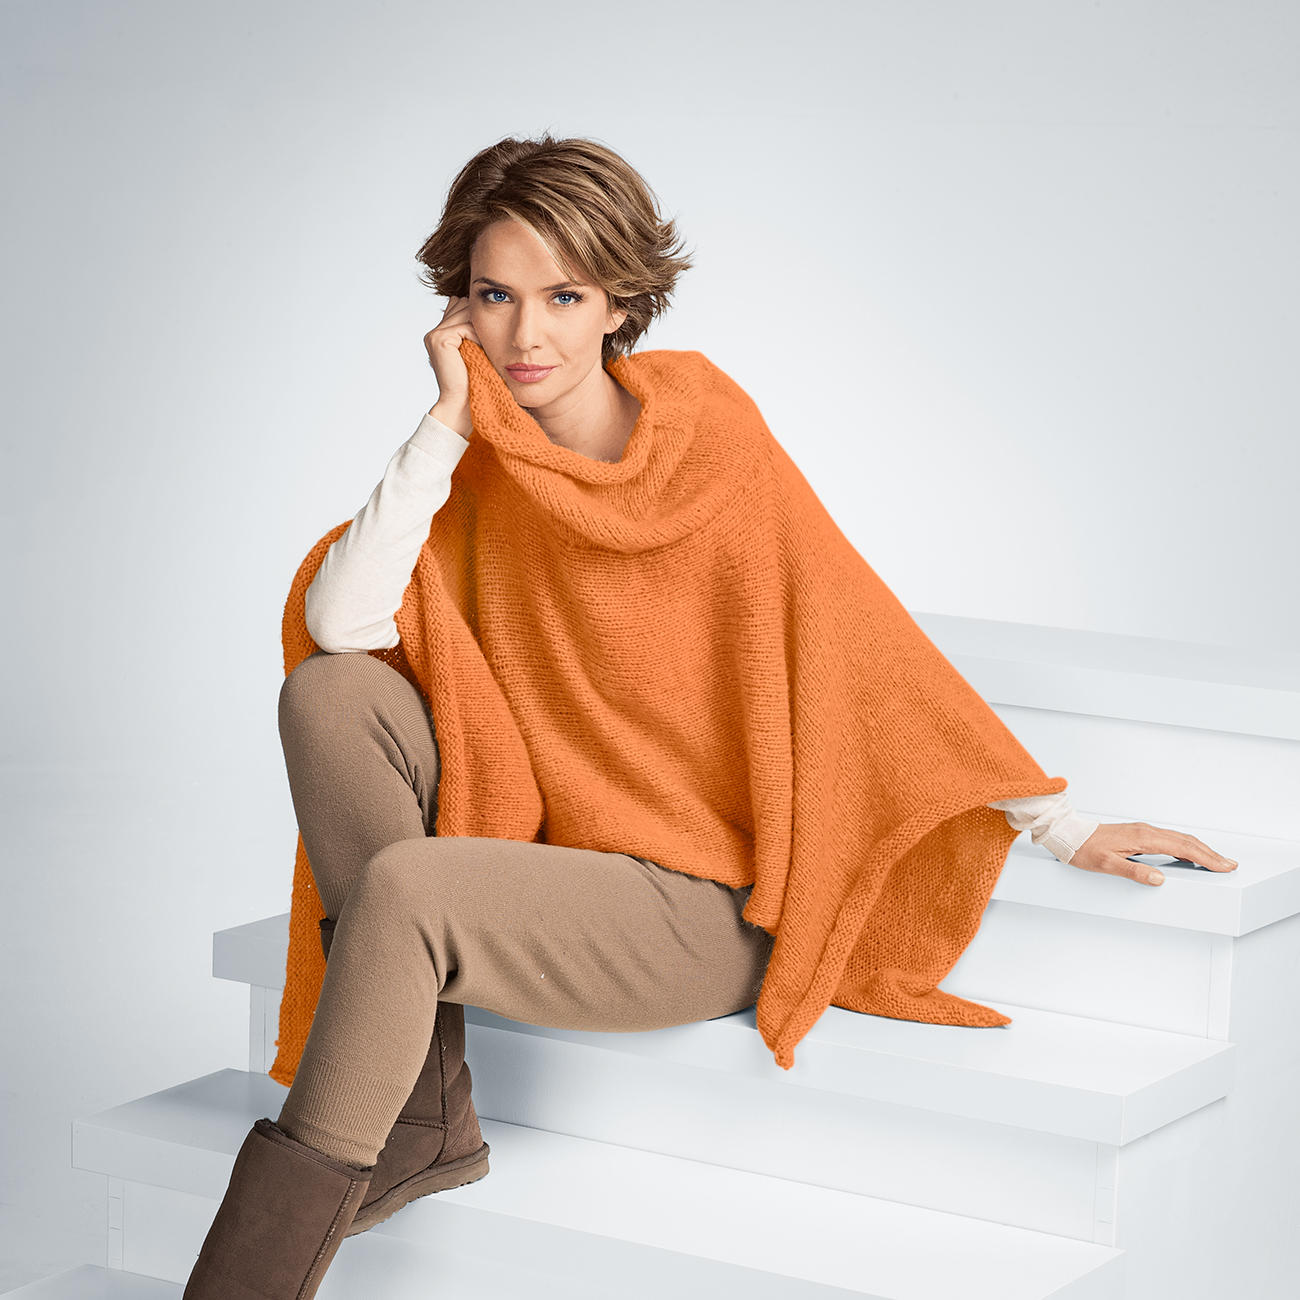 Ponchos boleros strickmodelle junghans wolle - Junghanns wolle ...